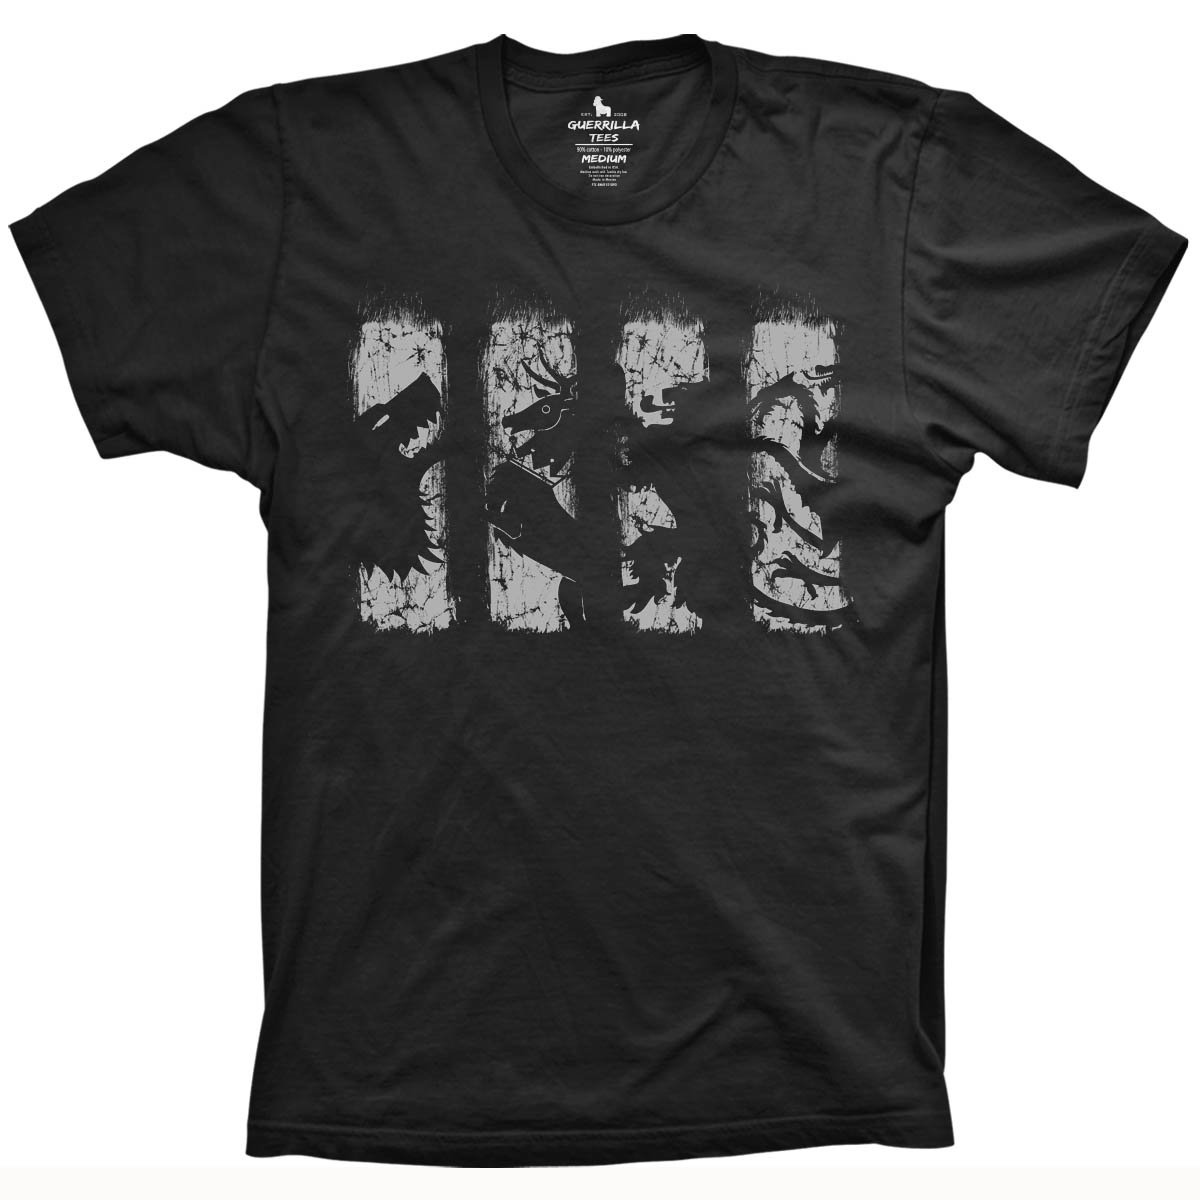 Game Of Thrones Fan T Shirts Houses Shirt Guerrilla Tees